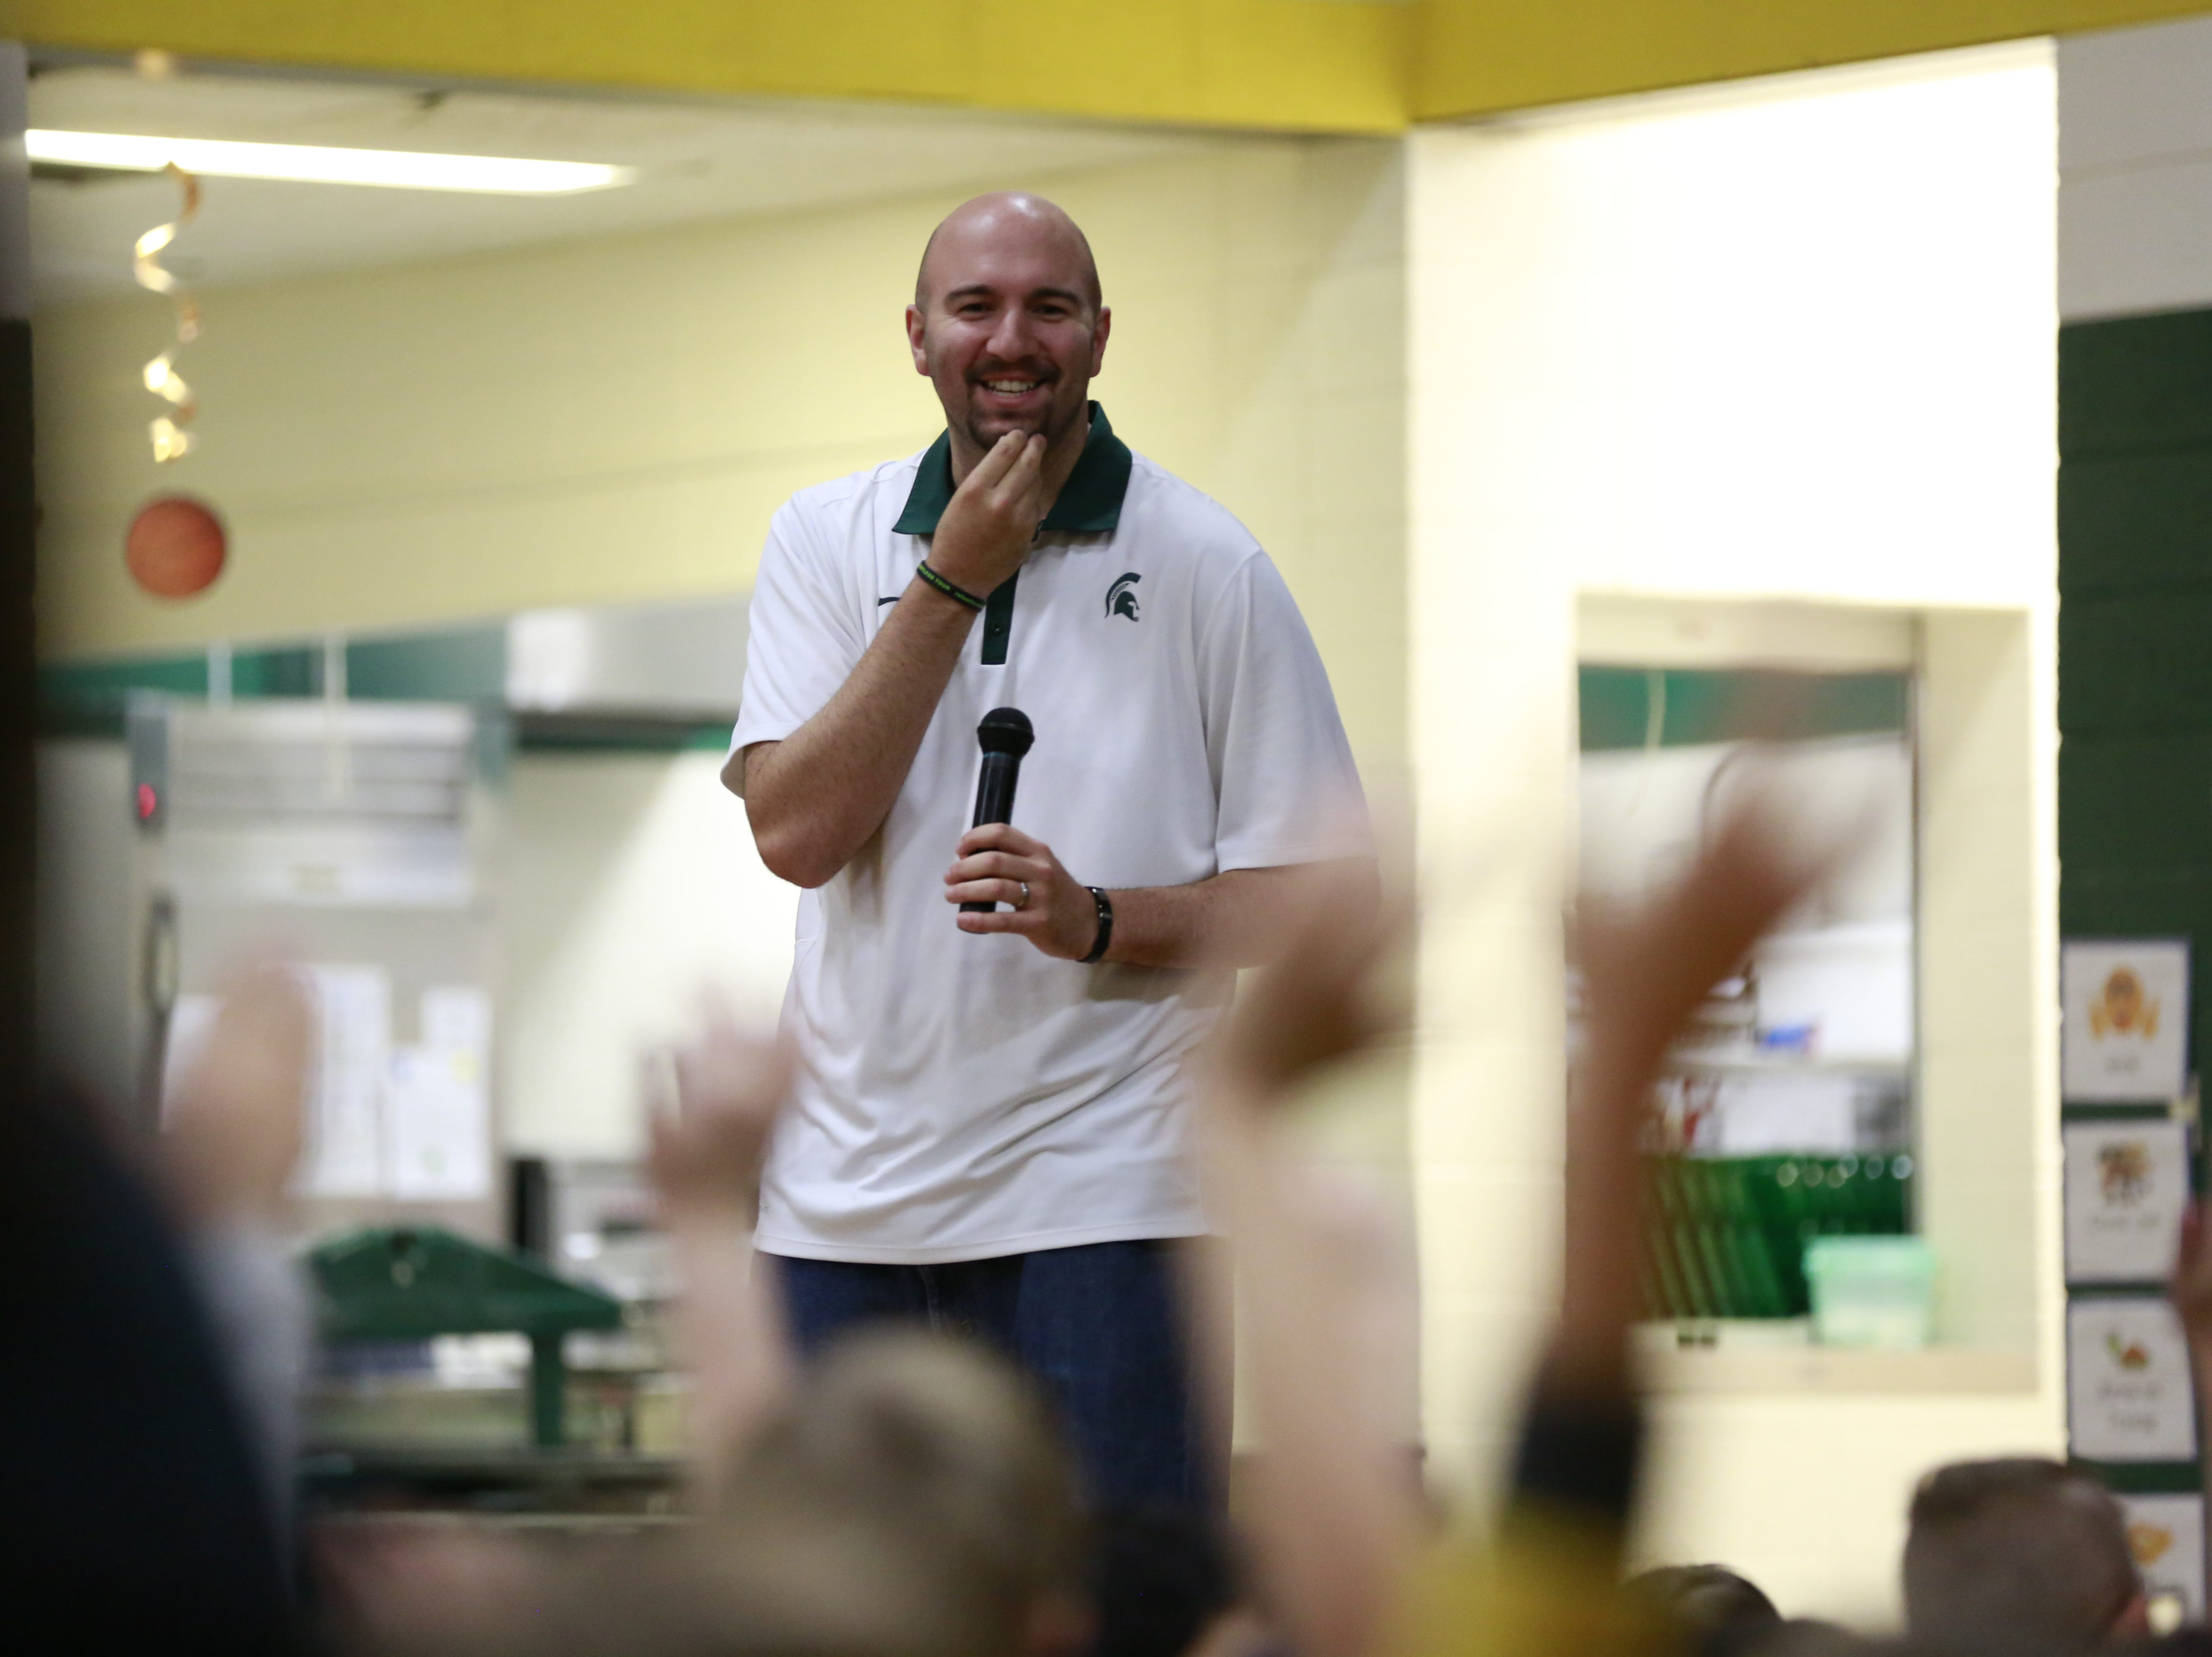 Former MSU basketball player Anthony Ianni looks on students to pick for an activity Monday, Oct. 15, 2018, as part of the Anti-Bullying Relentless Tour to Visit Wisconsin at Weston Elementary School in Weston, Wis.